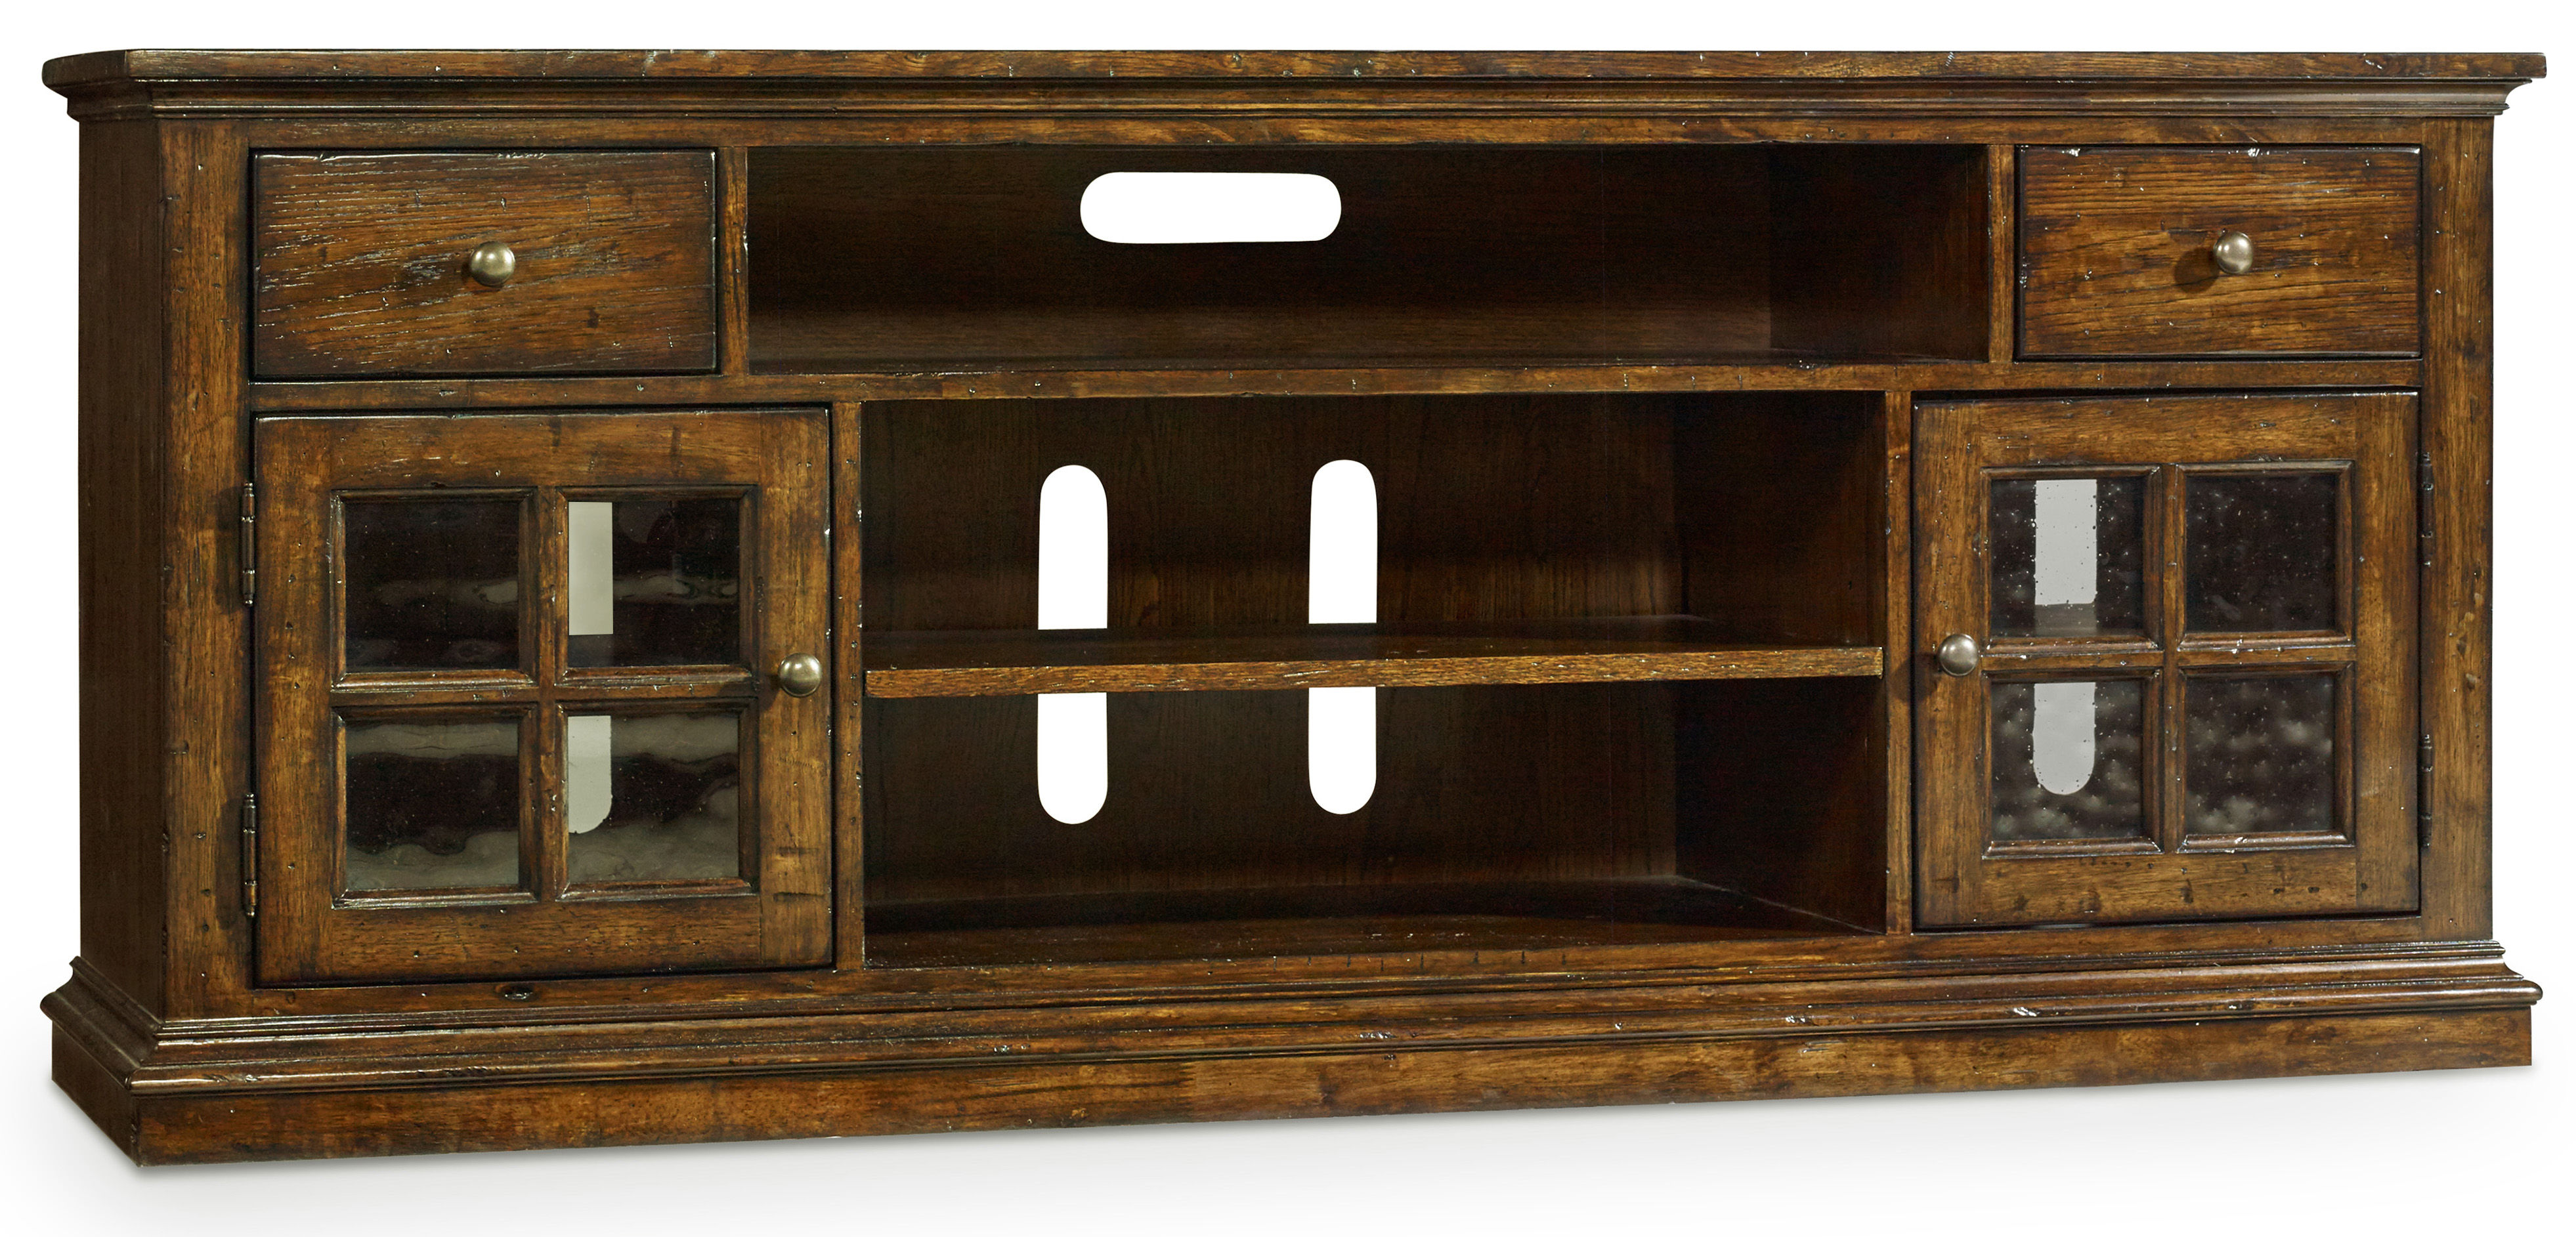 Hooker Furniture Brantley Entertainment Console - Item Number: 5302-55466